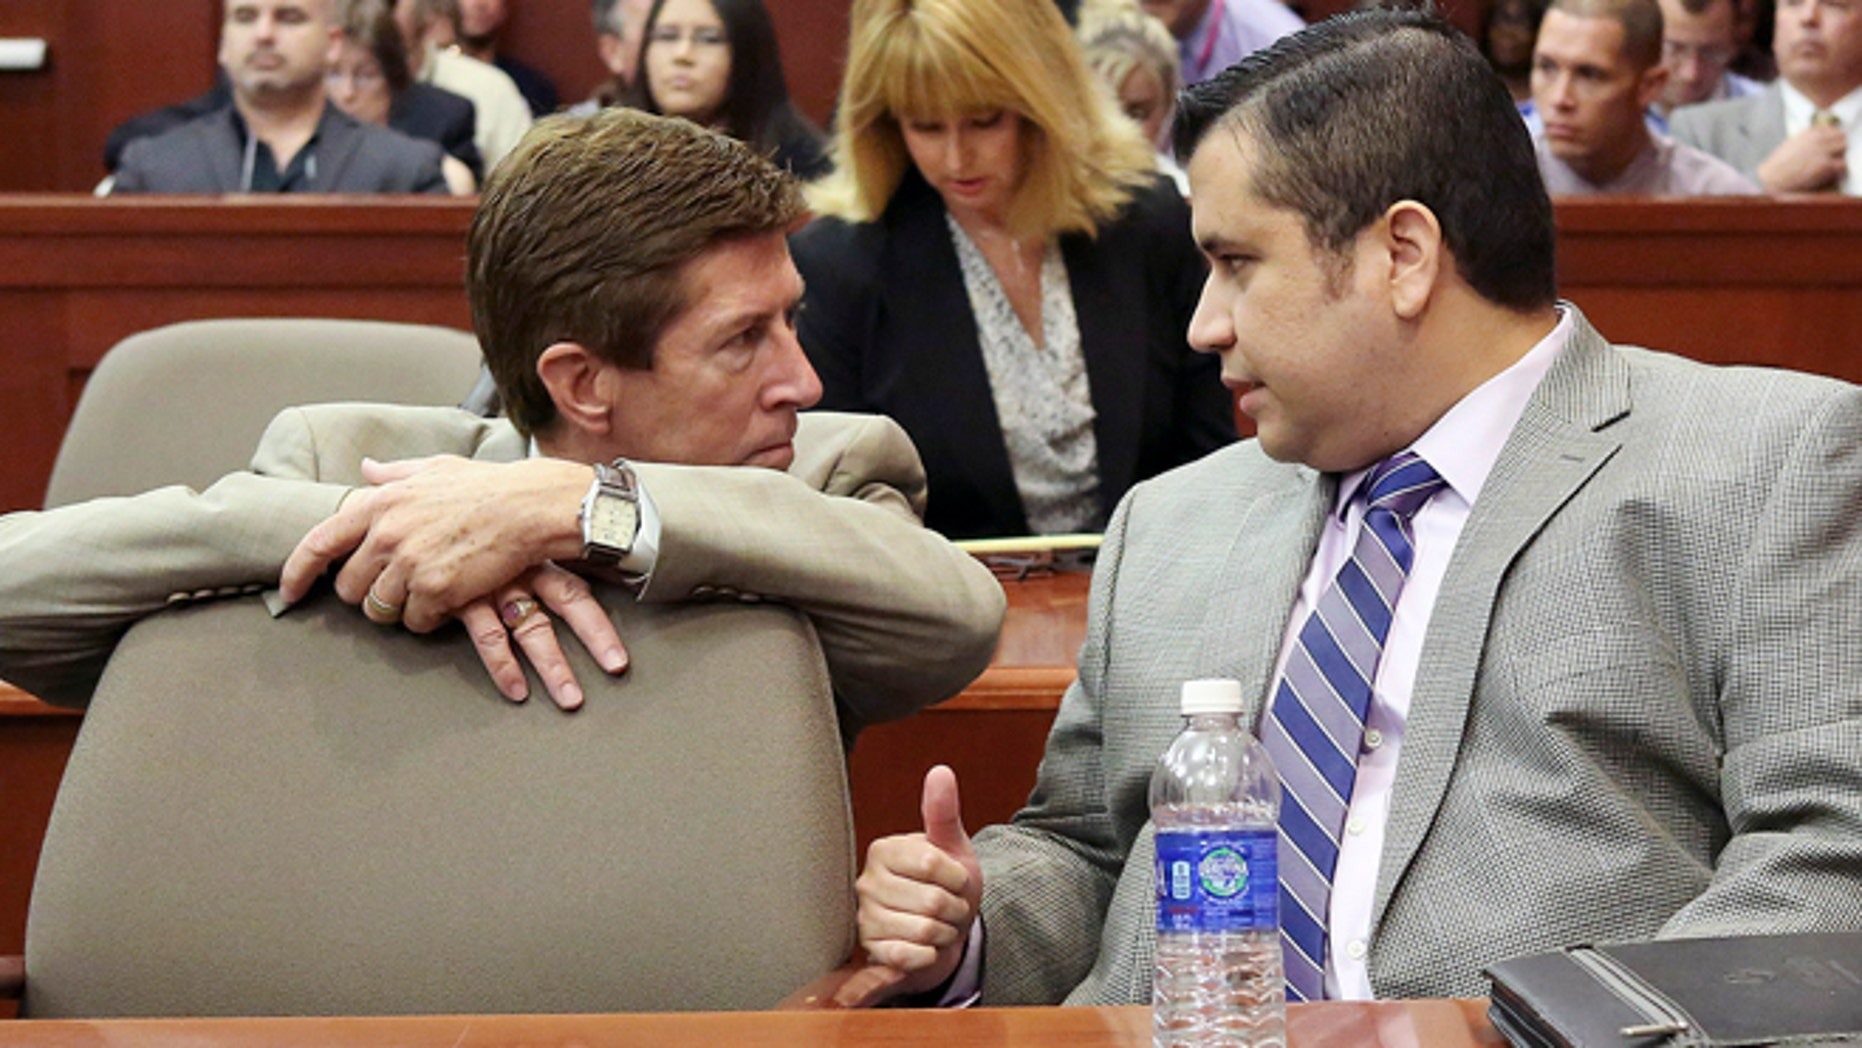 June 27, 2013: George Zimmerman, right, speaks with defense attorney Mark O'Mara during his trial in Seminole circuit court in Sanford, Fla. (AP/Orlando Sentinel, Jacob Langston, Pool)